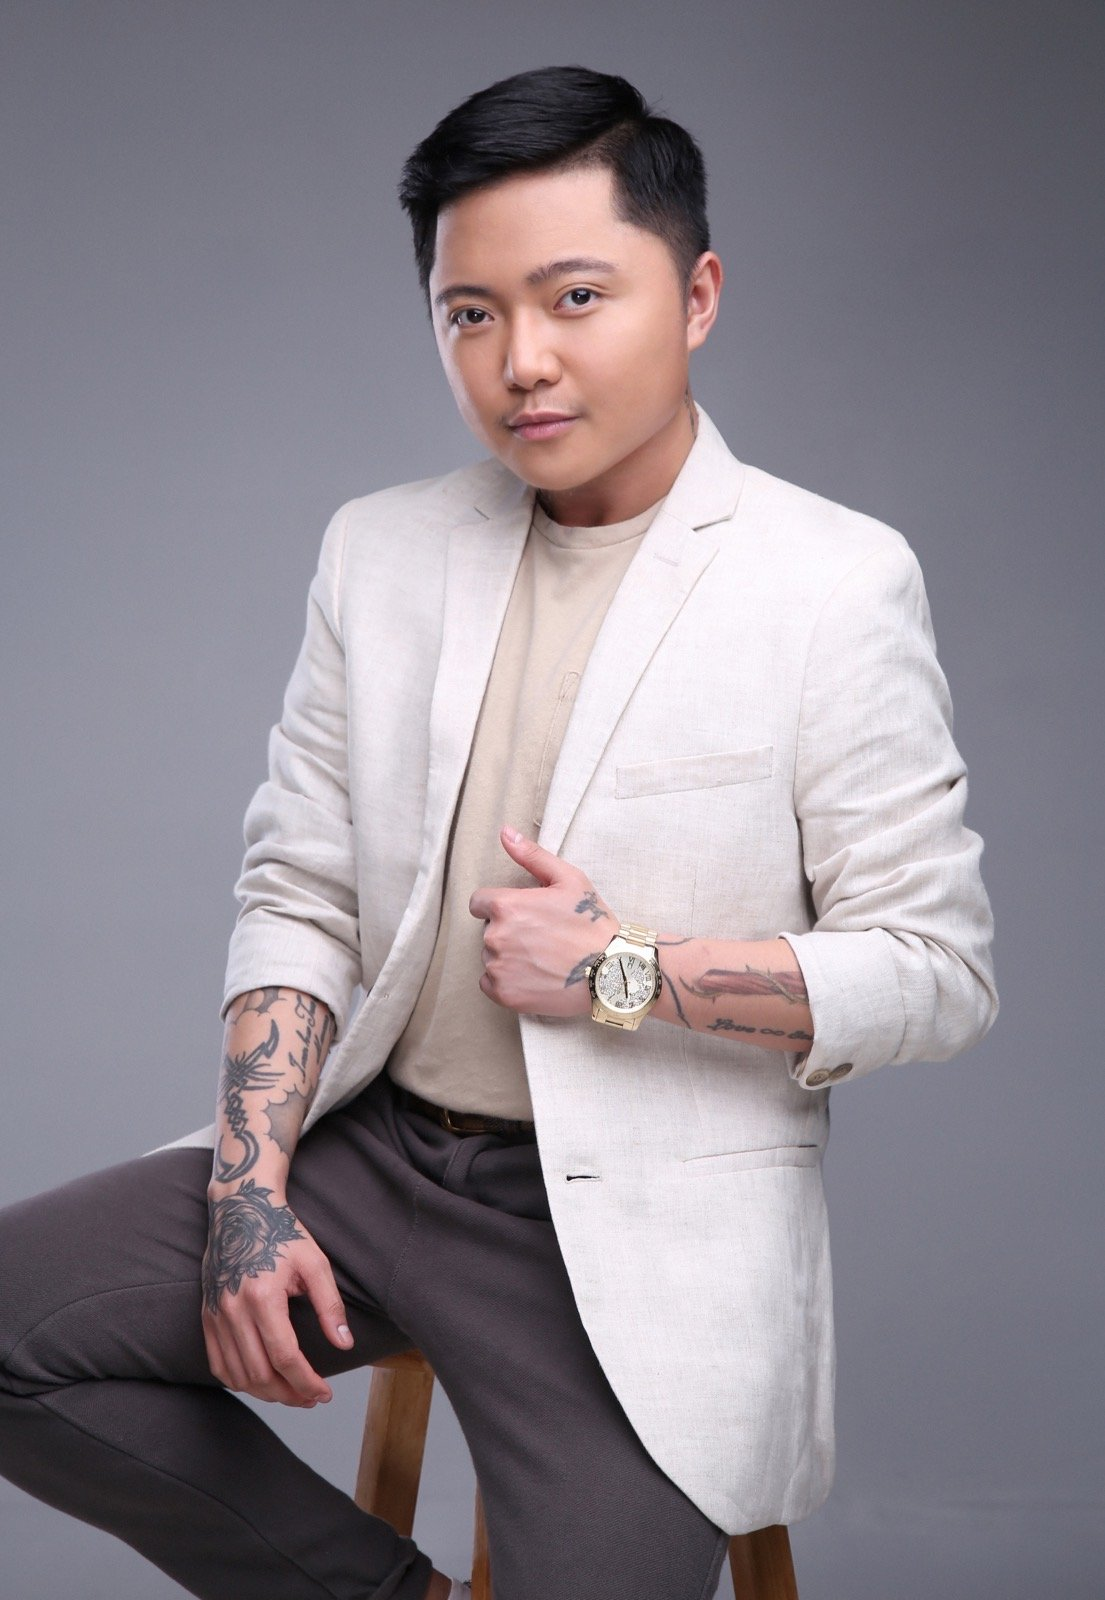 'Jake and Charice' is the national winner for Best Documentary Programme in Japan